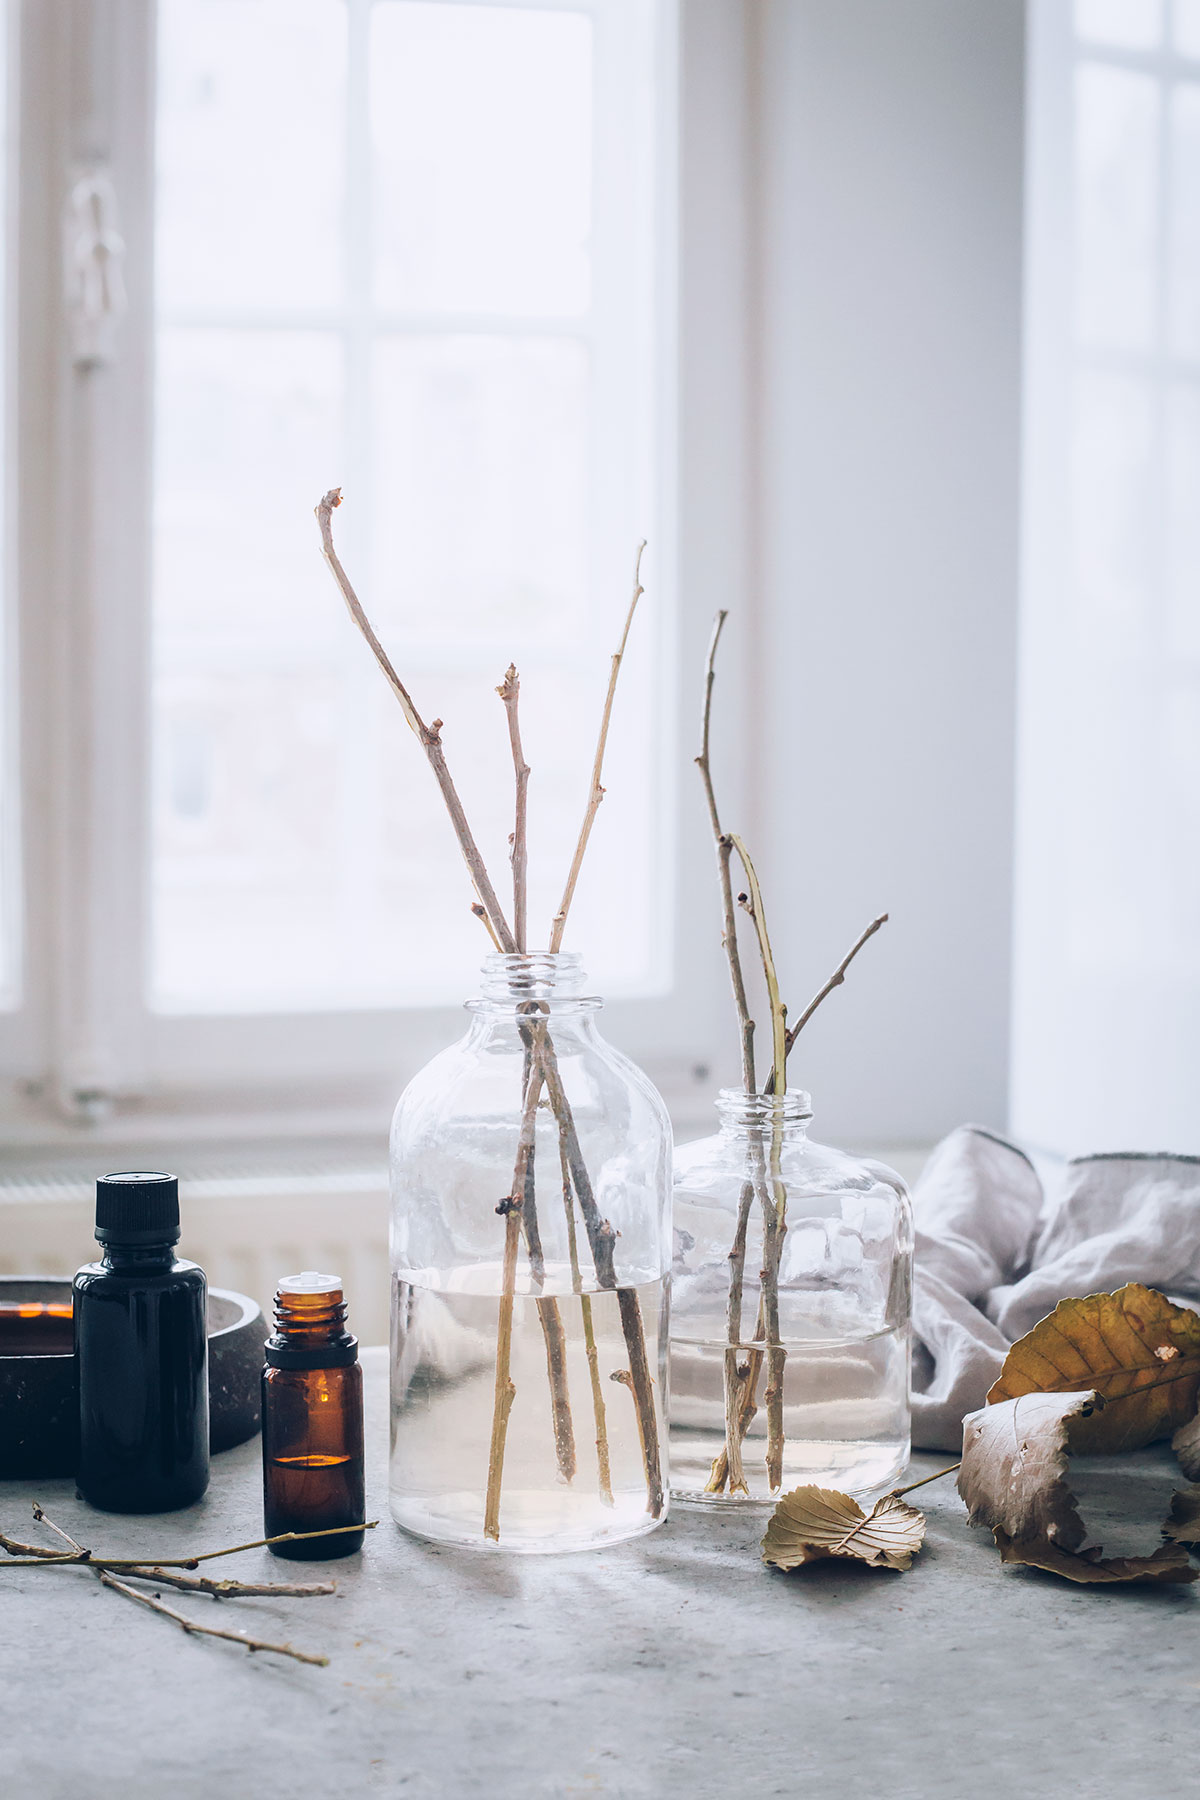 DIY essential oil reed diffuser with various mixes